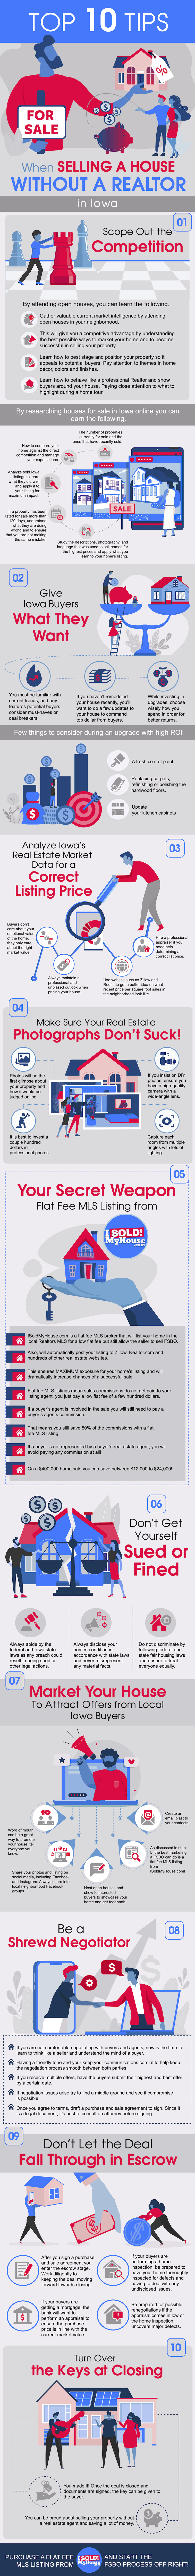 infographic of the 10 steps to sell a house in iowa without an agent